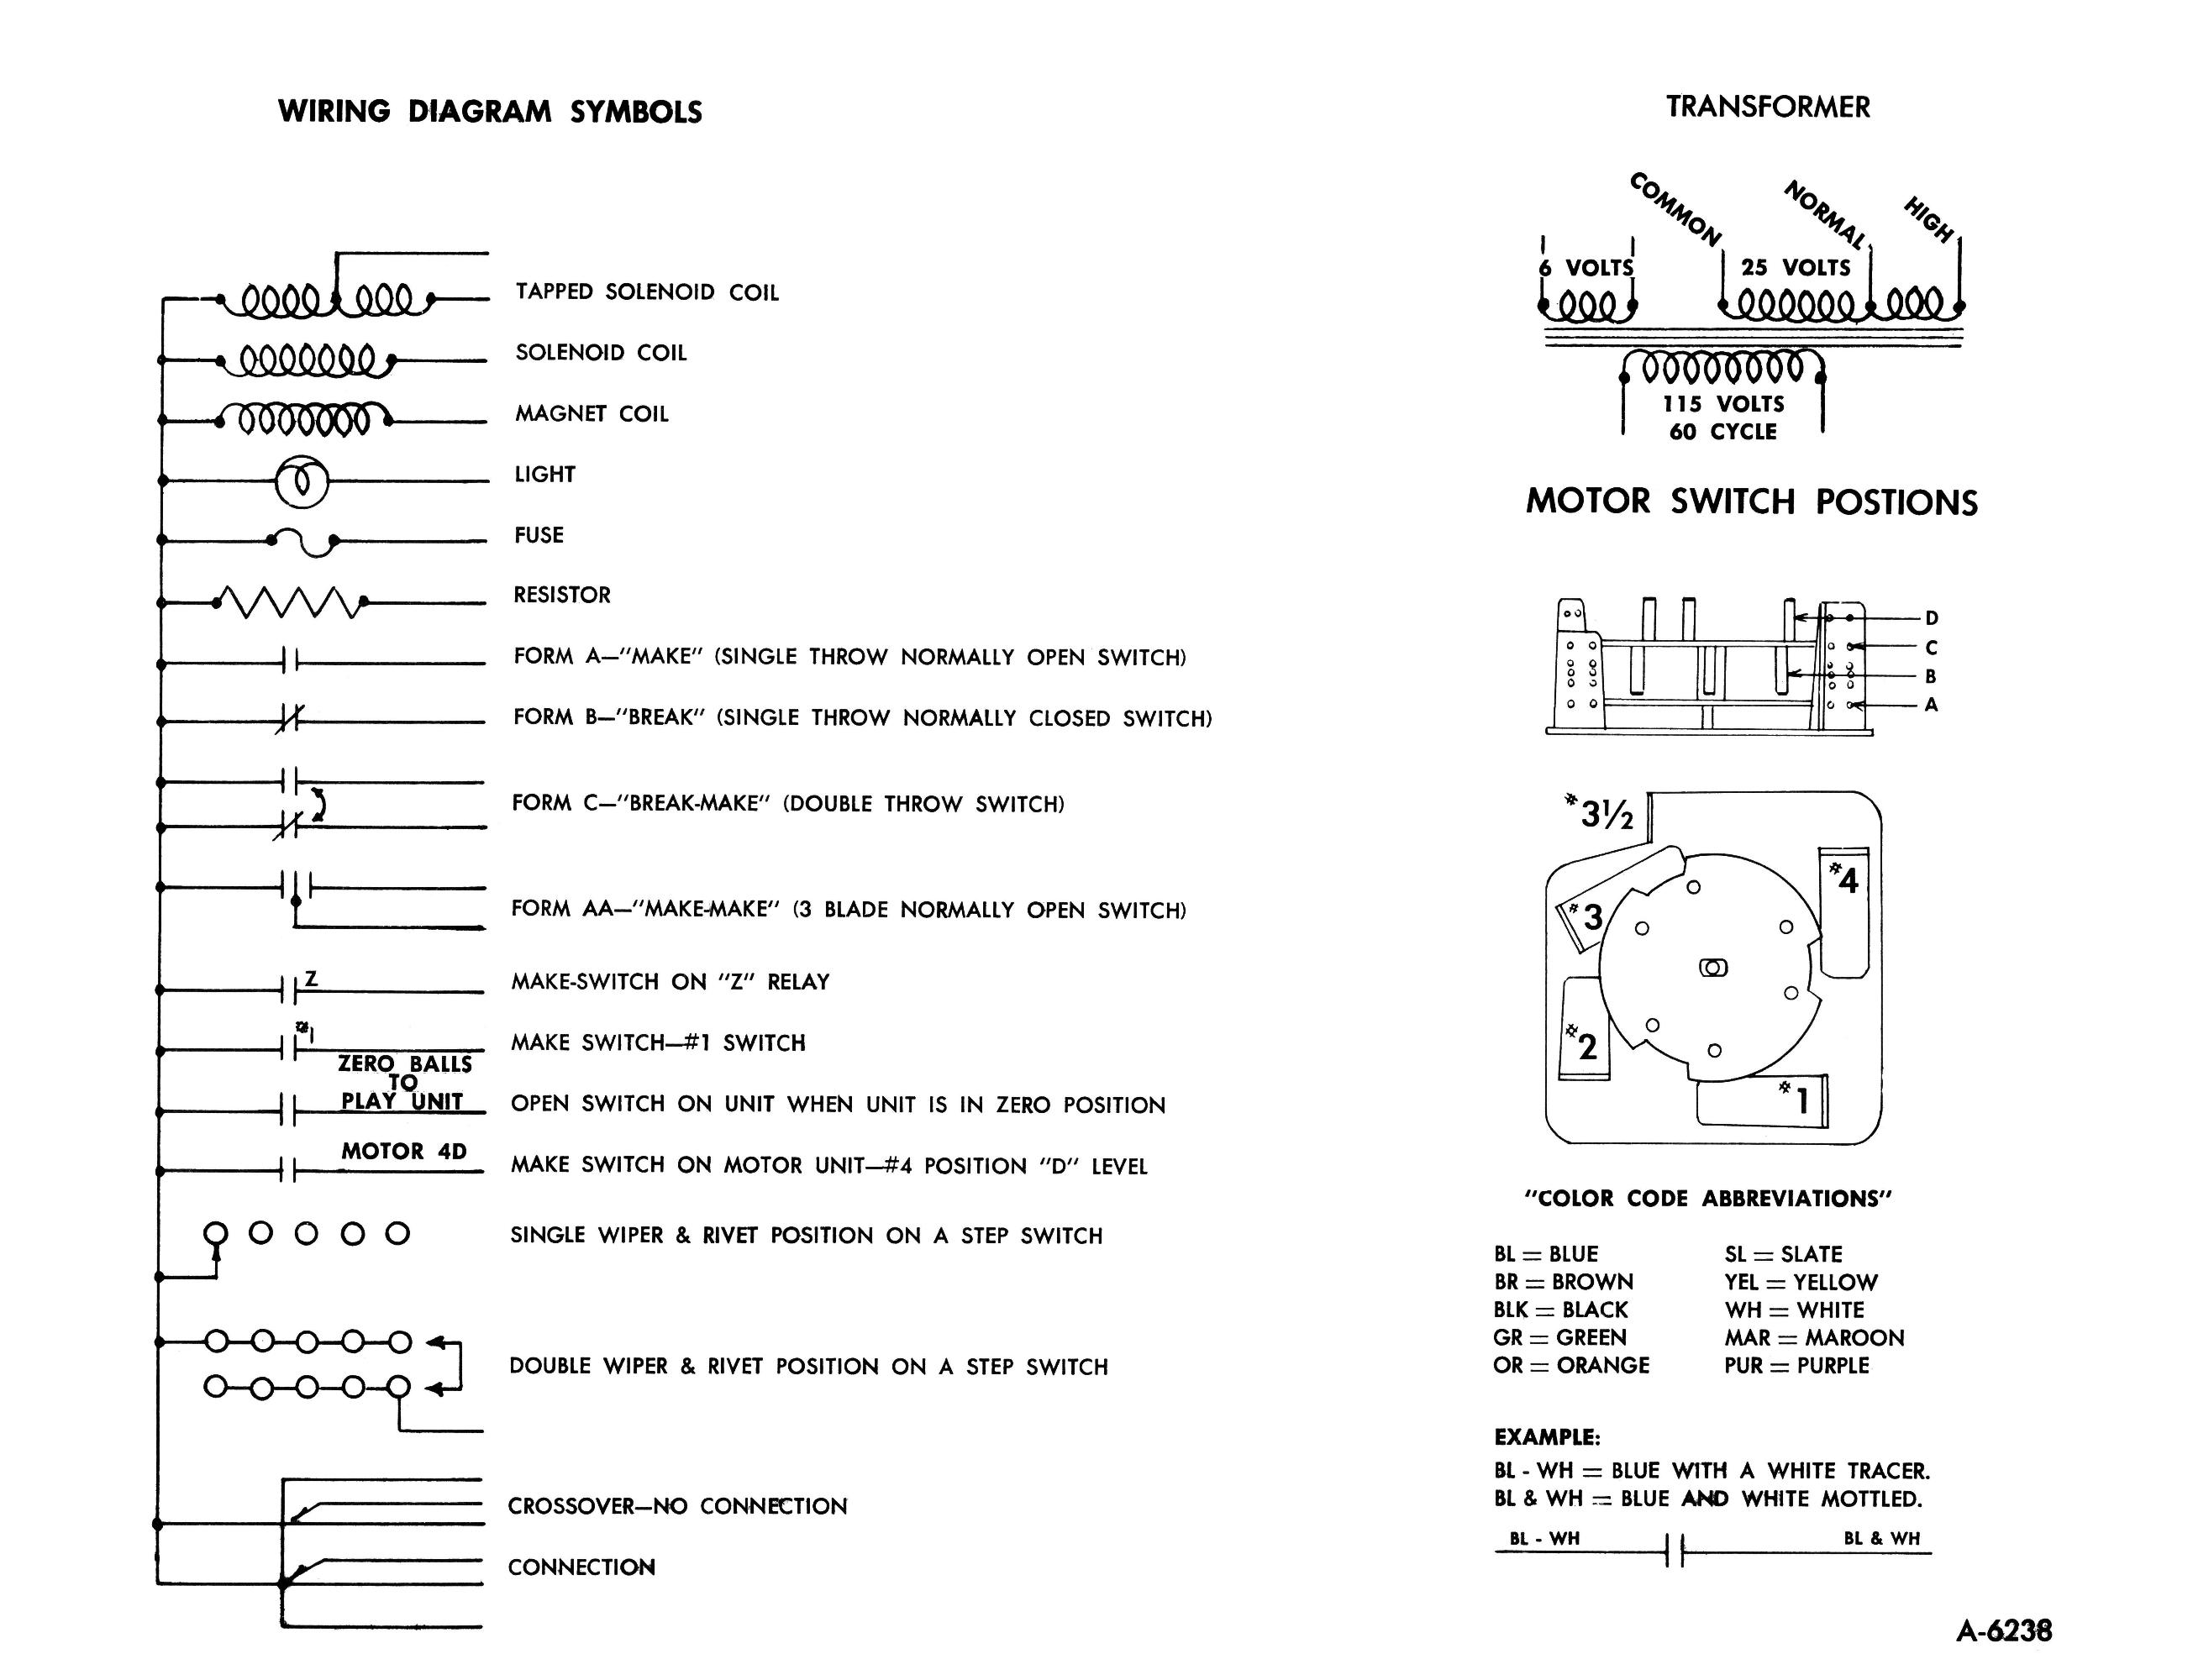 Electrical Line Diagram Symbols Pinball Wiring Diagrams Fe Online Stampede Sterns Gottlieb Score And Instruction